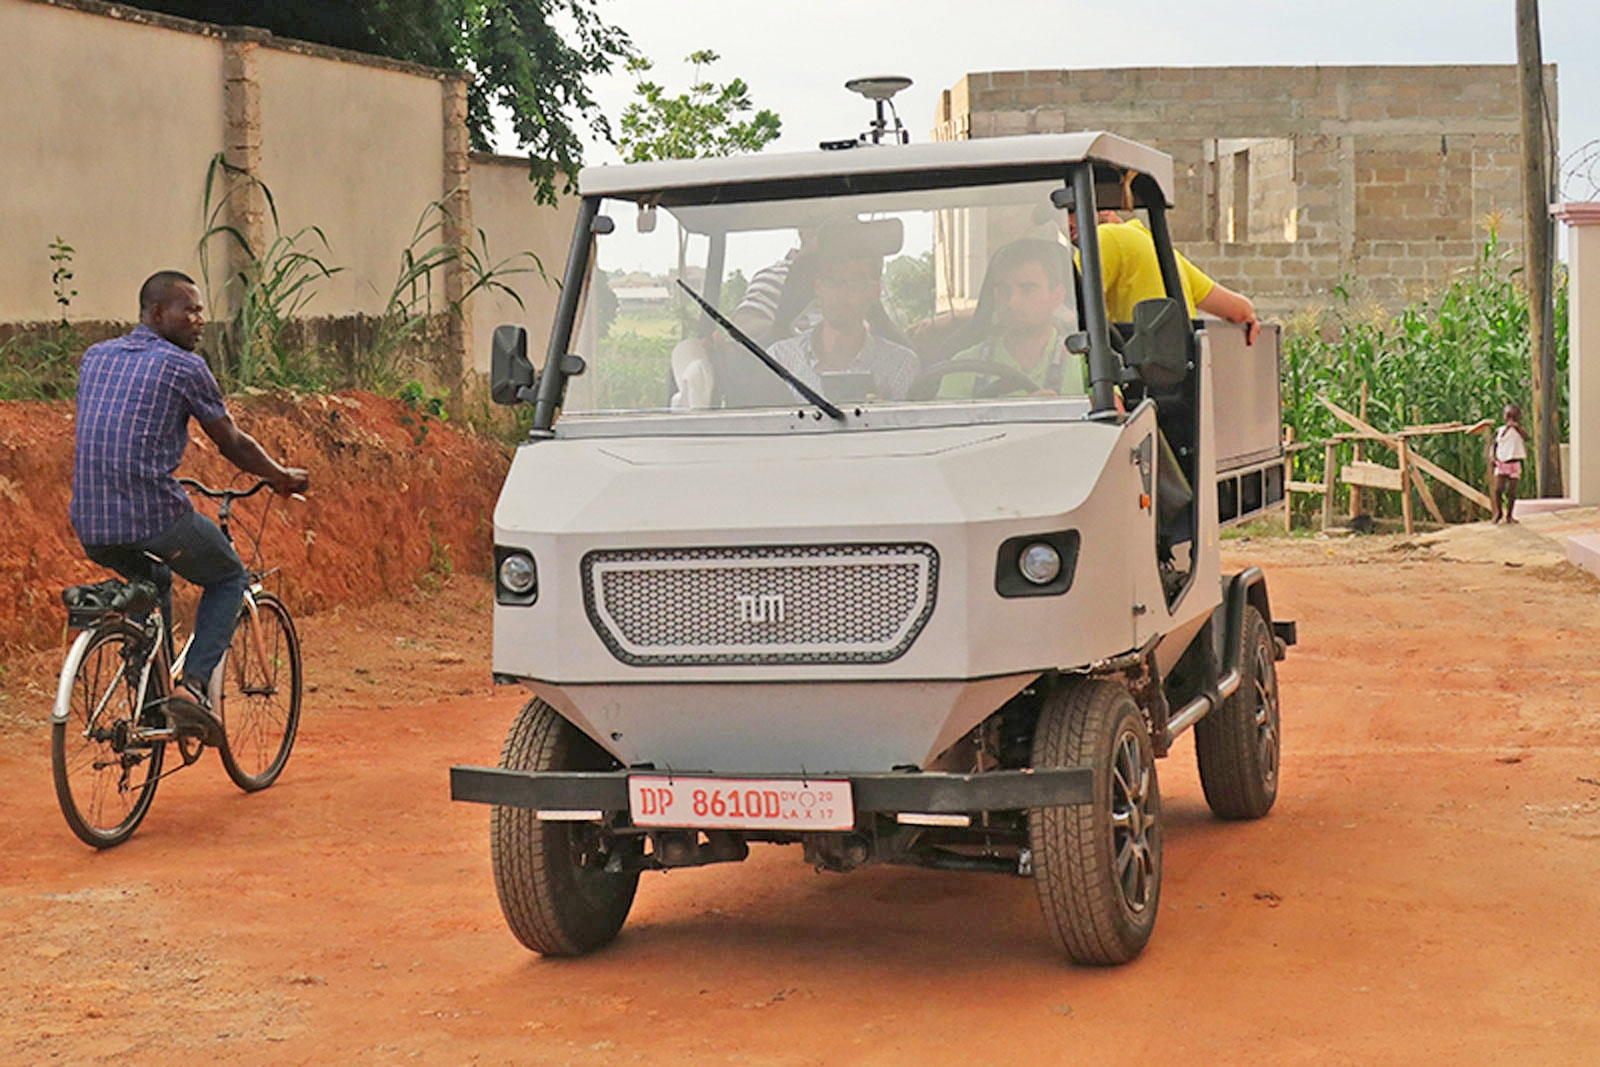 Electric car prototype is built for Africa's rural roads | DeviceDaily.com